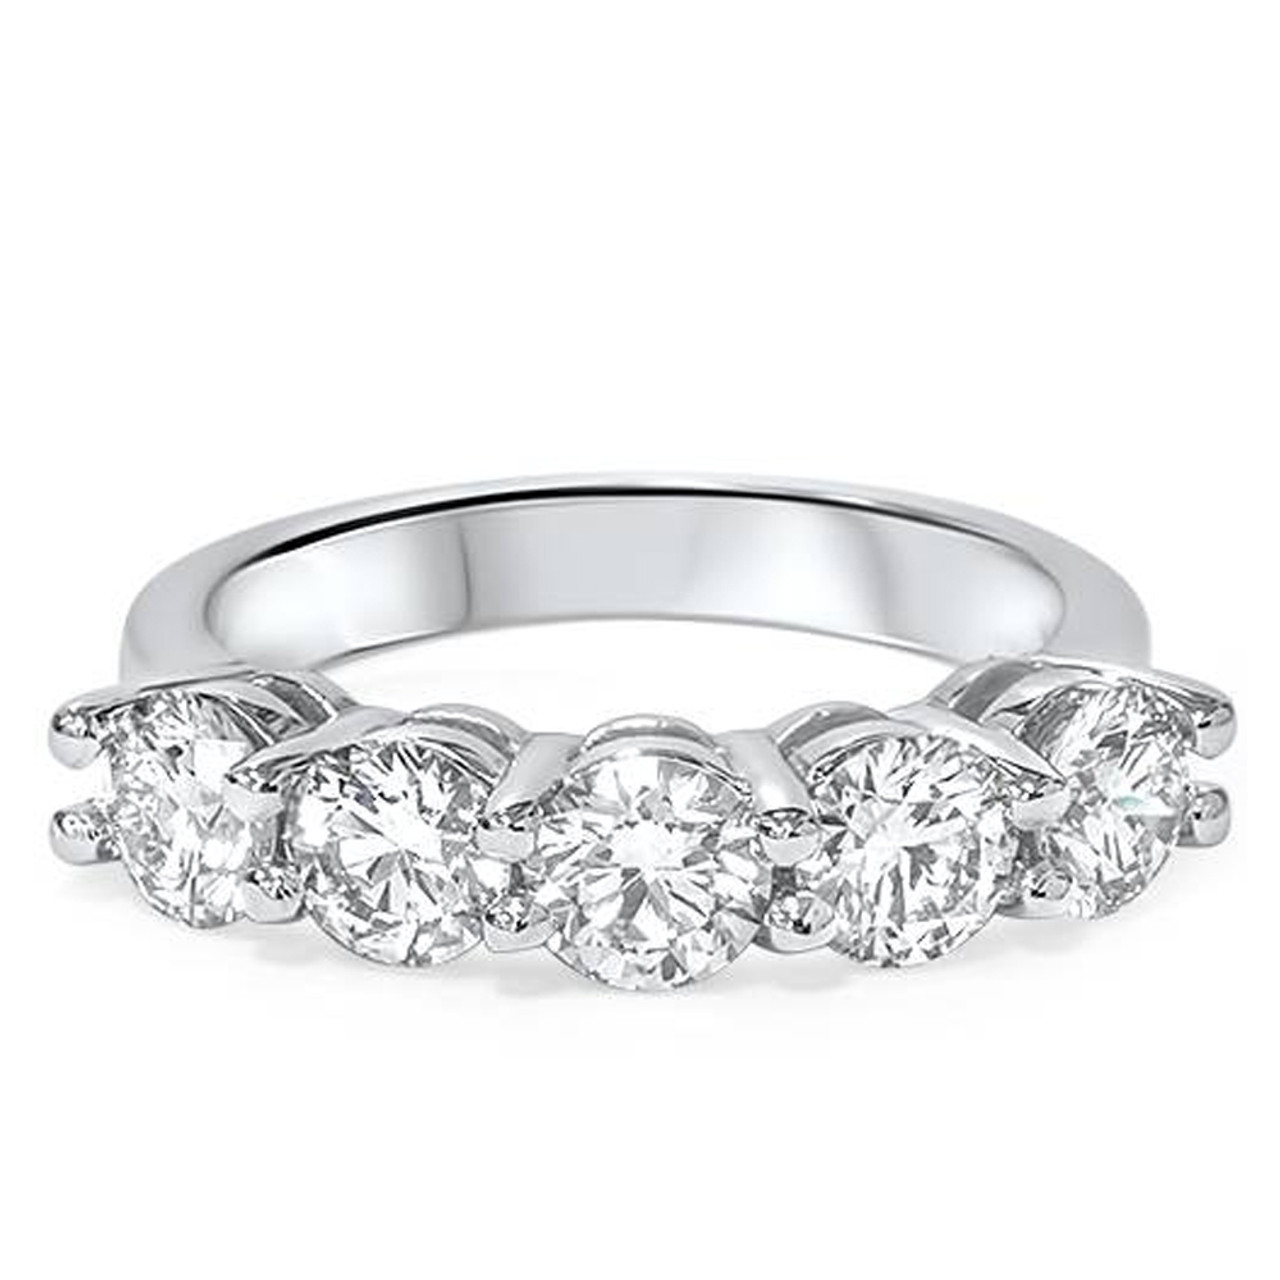 14k Gold Lab Grown Diamond Posts Eternity Fashion Ring High Quality Fine Jewelry